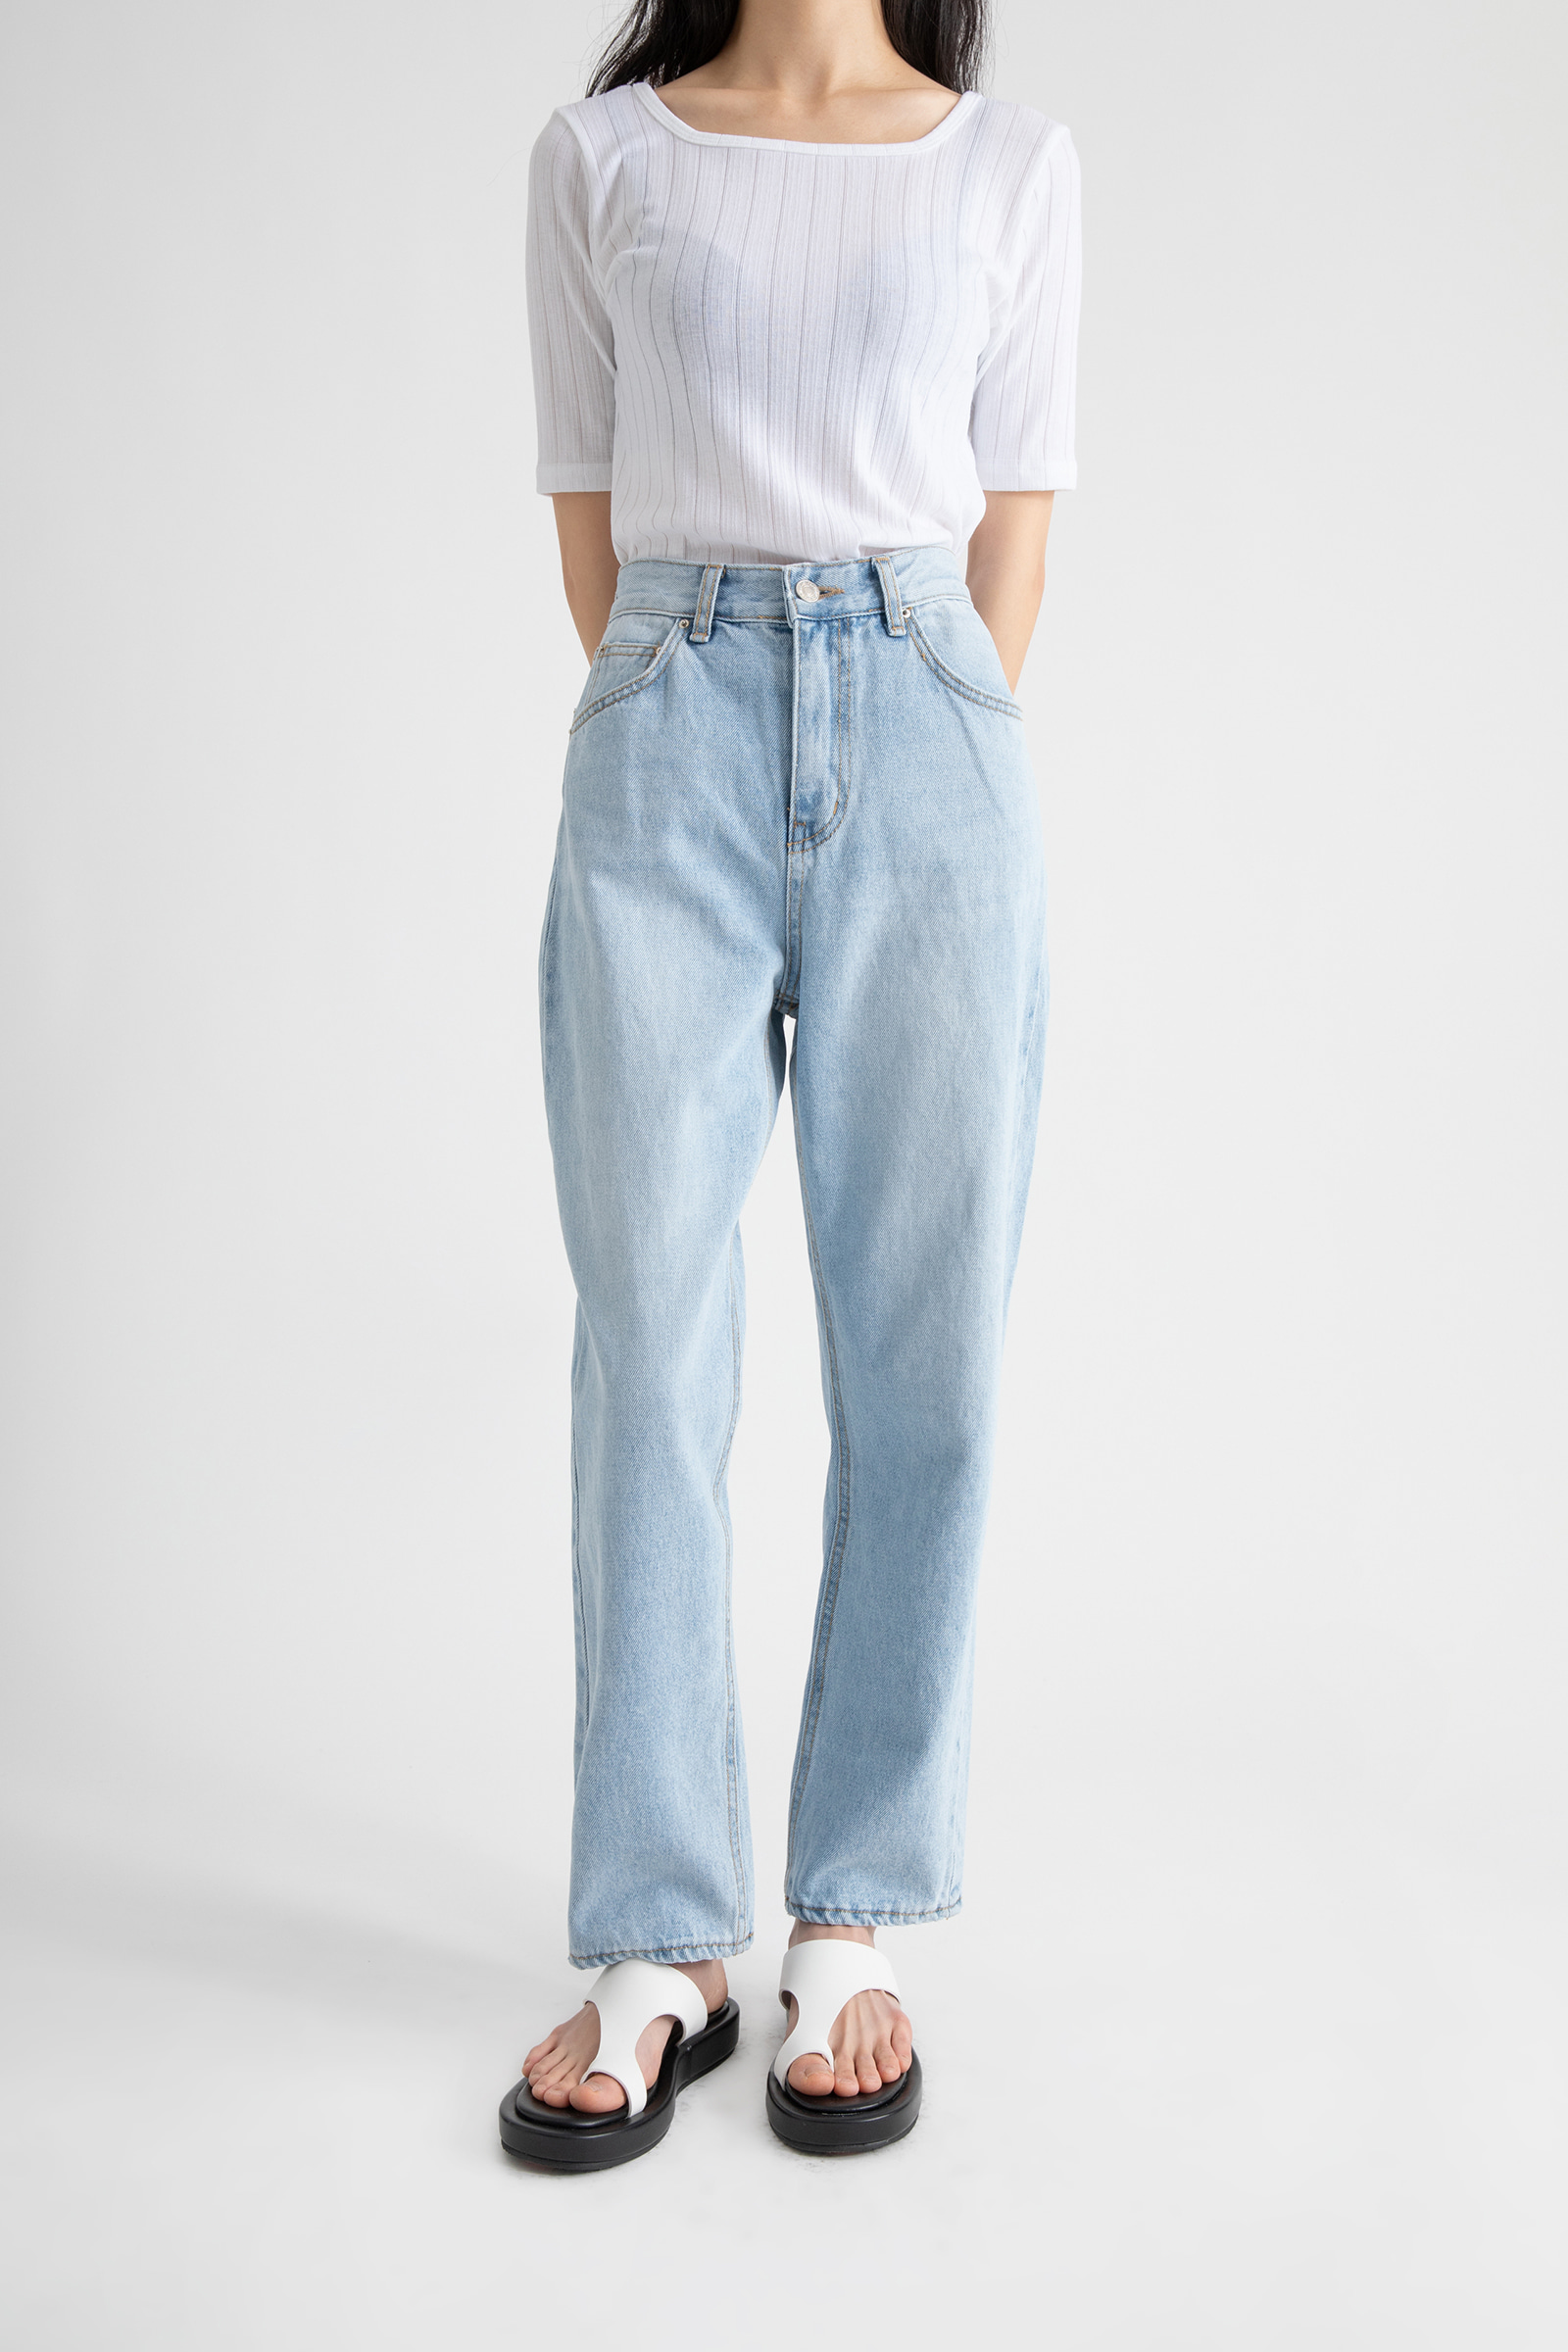 Earth straight jeans